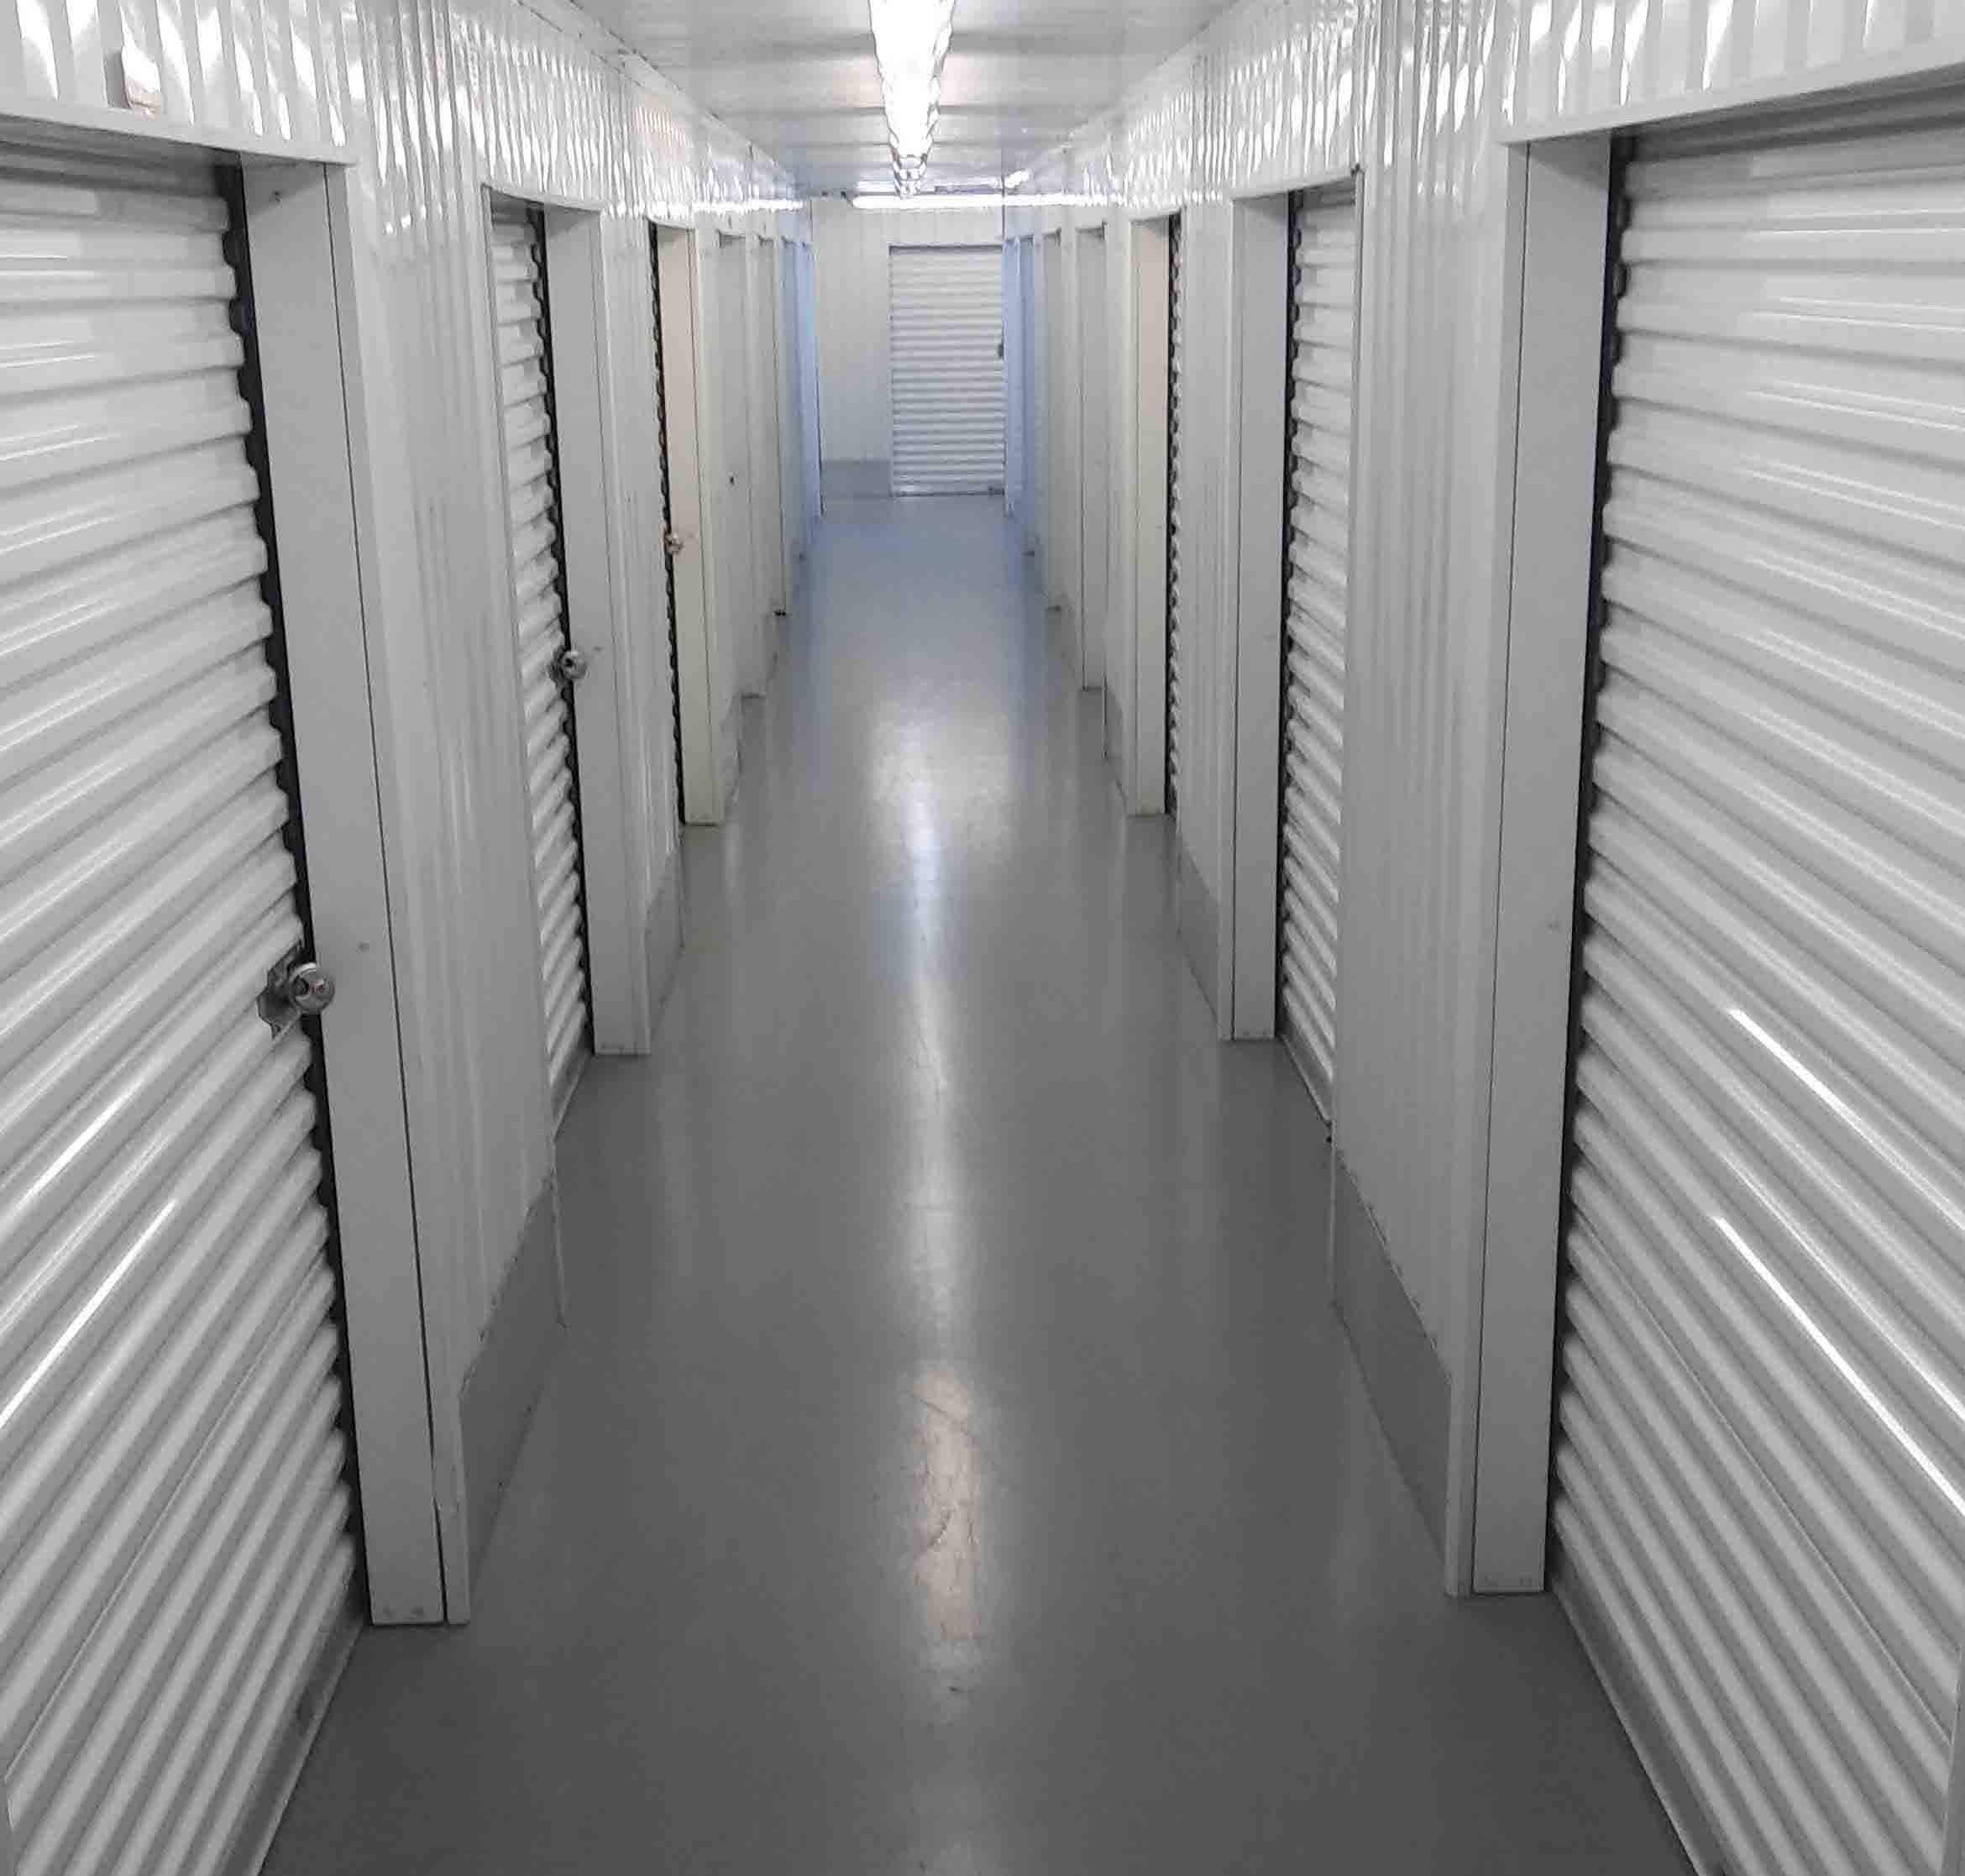 Inside view of storage units at Smart Stop Self Storage facility at 23250 Westheimer Parkway, Katy Texas